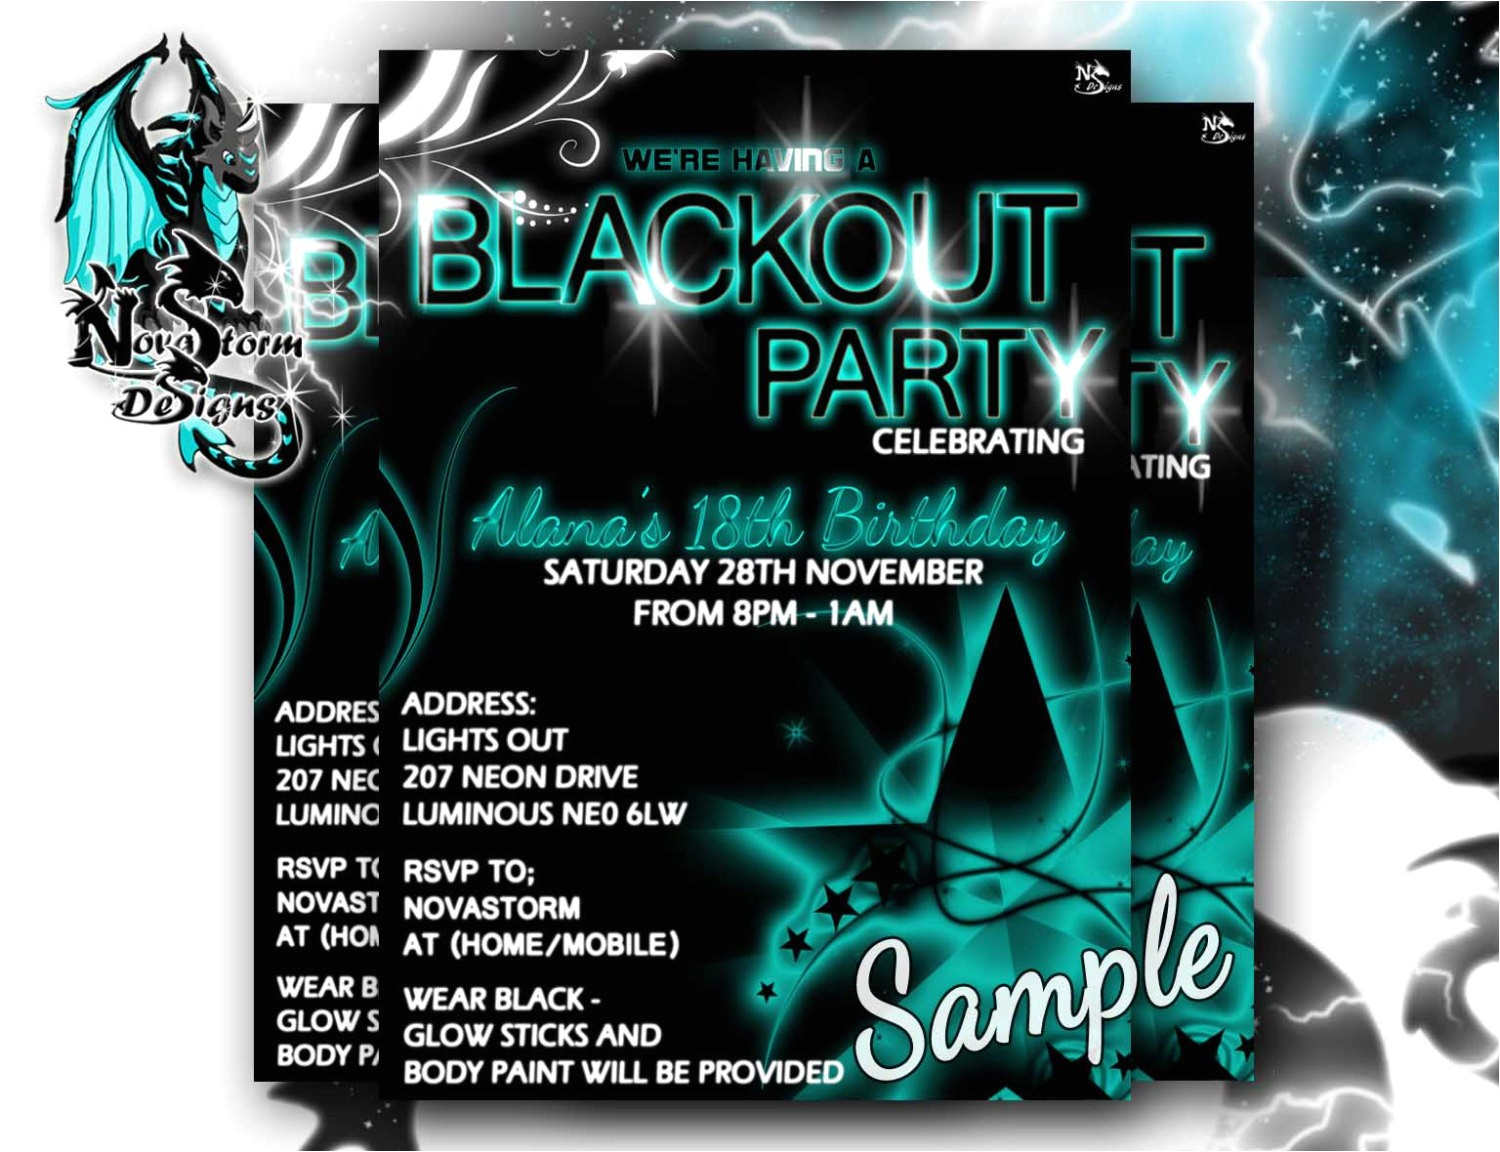 Blackout Party Invitations Blackout Party Invitations Uv Glow Dance Party Blacklight